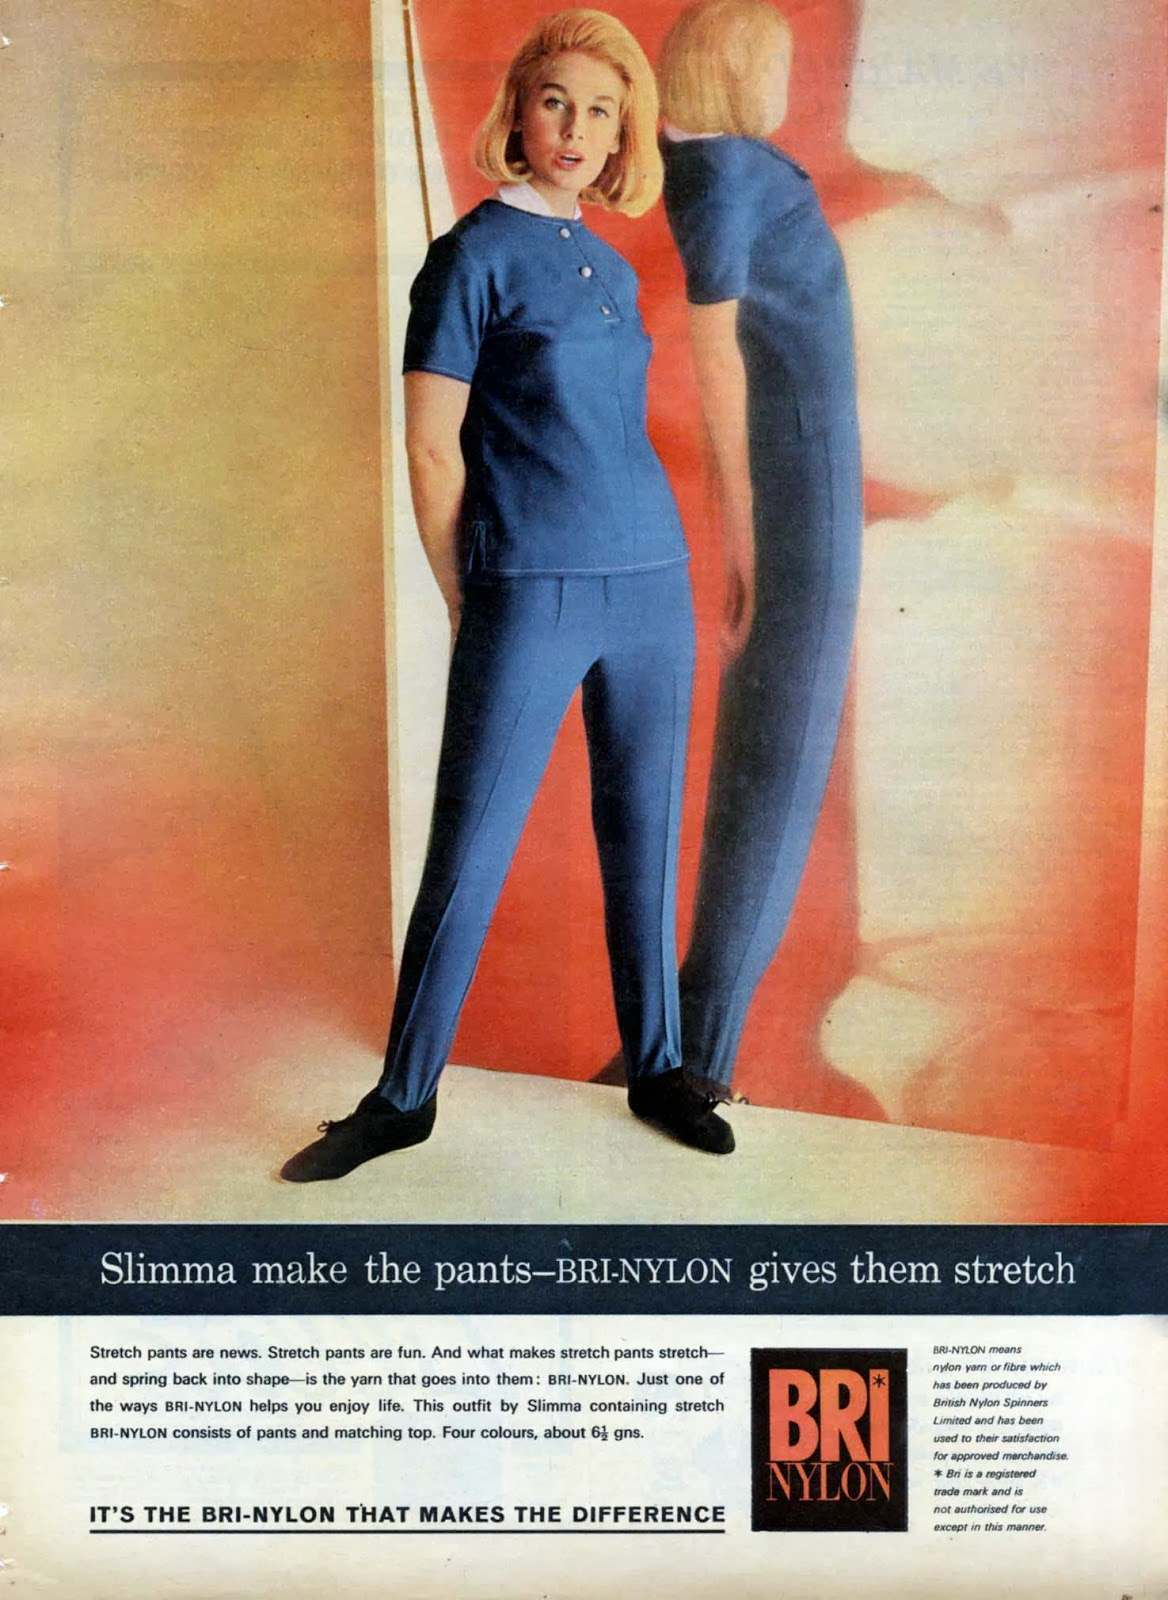 Bri Nylon Stretch Pants Flashbak